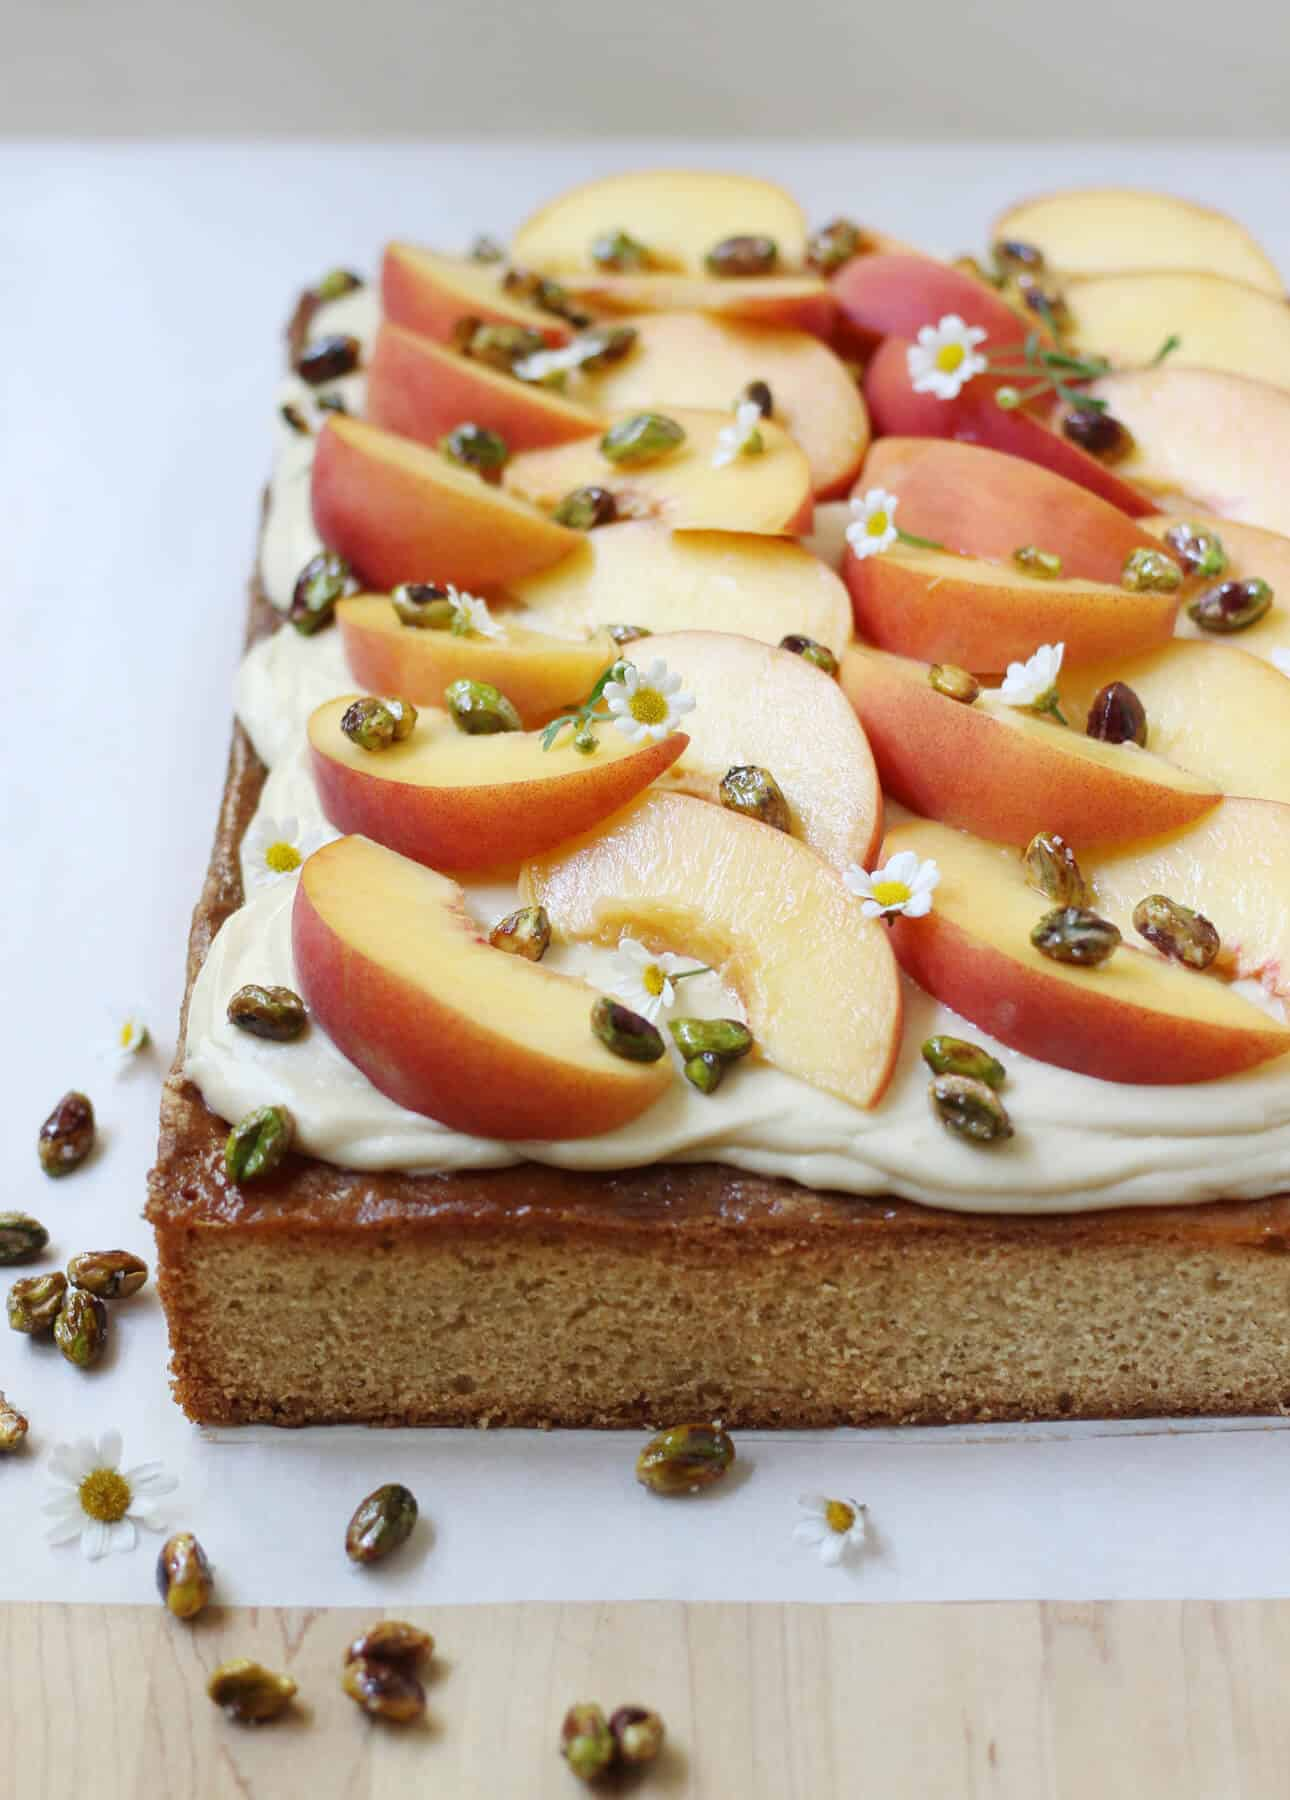 Cardamom Sheet Cake with Salted Caramel Cream Cheese Frosting and Fresh Peaches